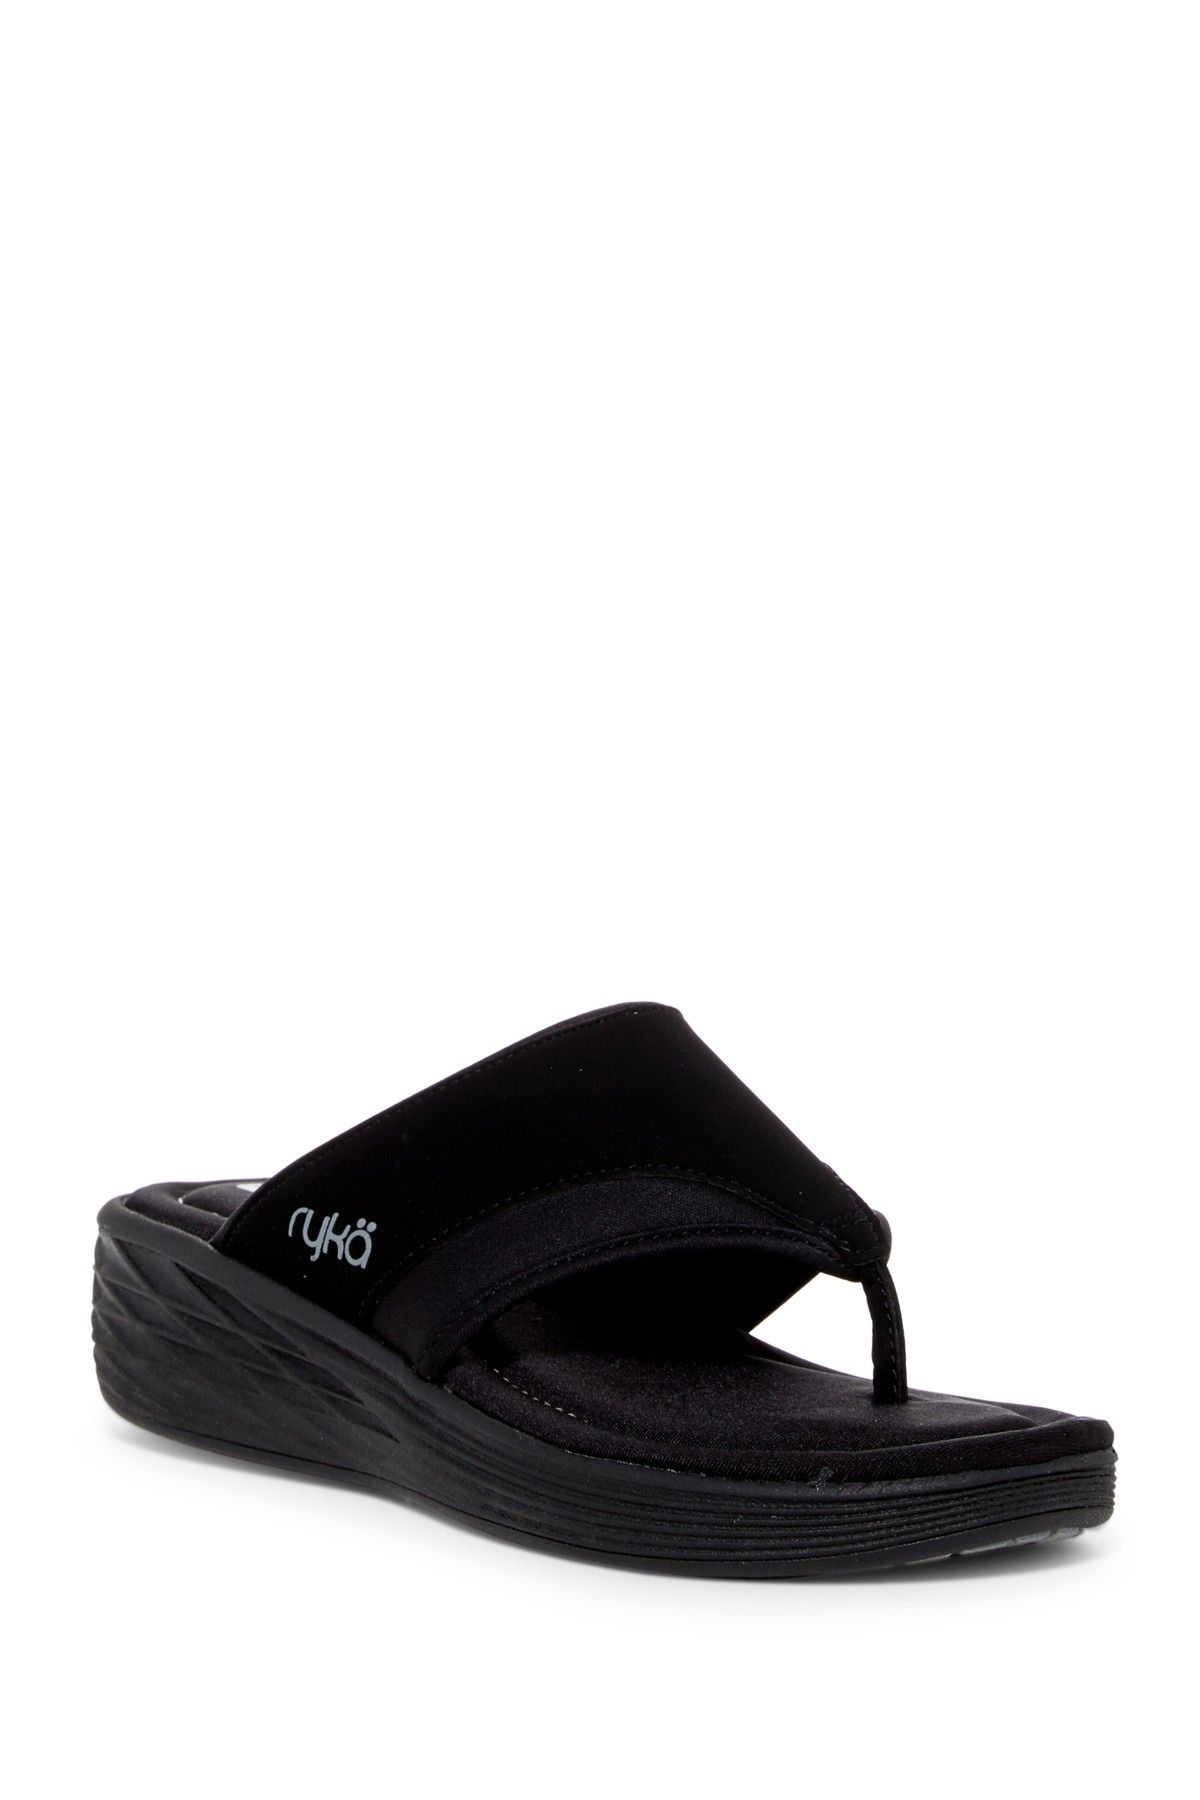 Ryka  Natalia Wedge Sandal Women - Wide Width Available -3808